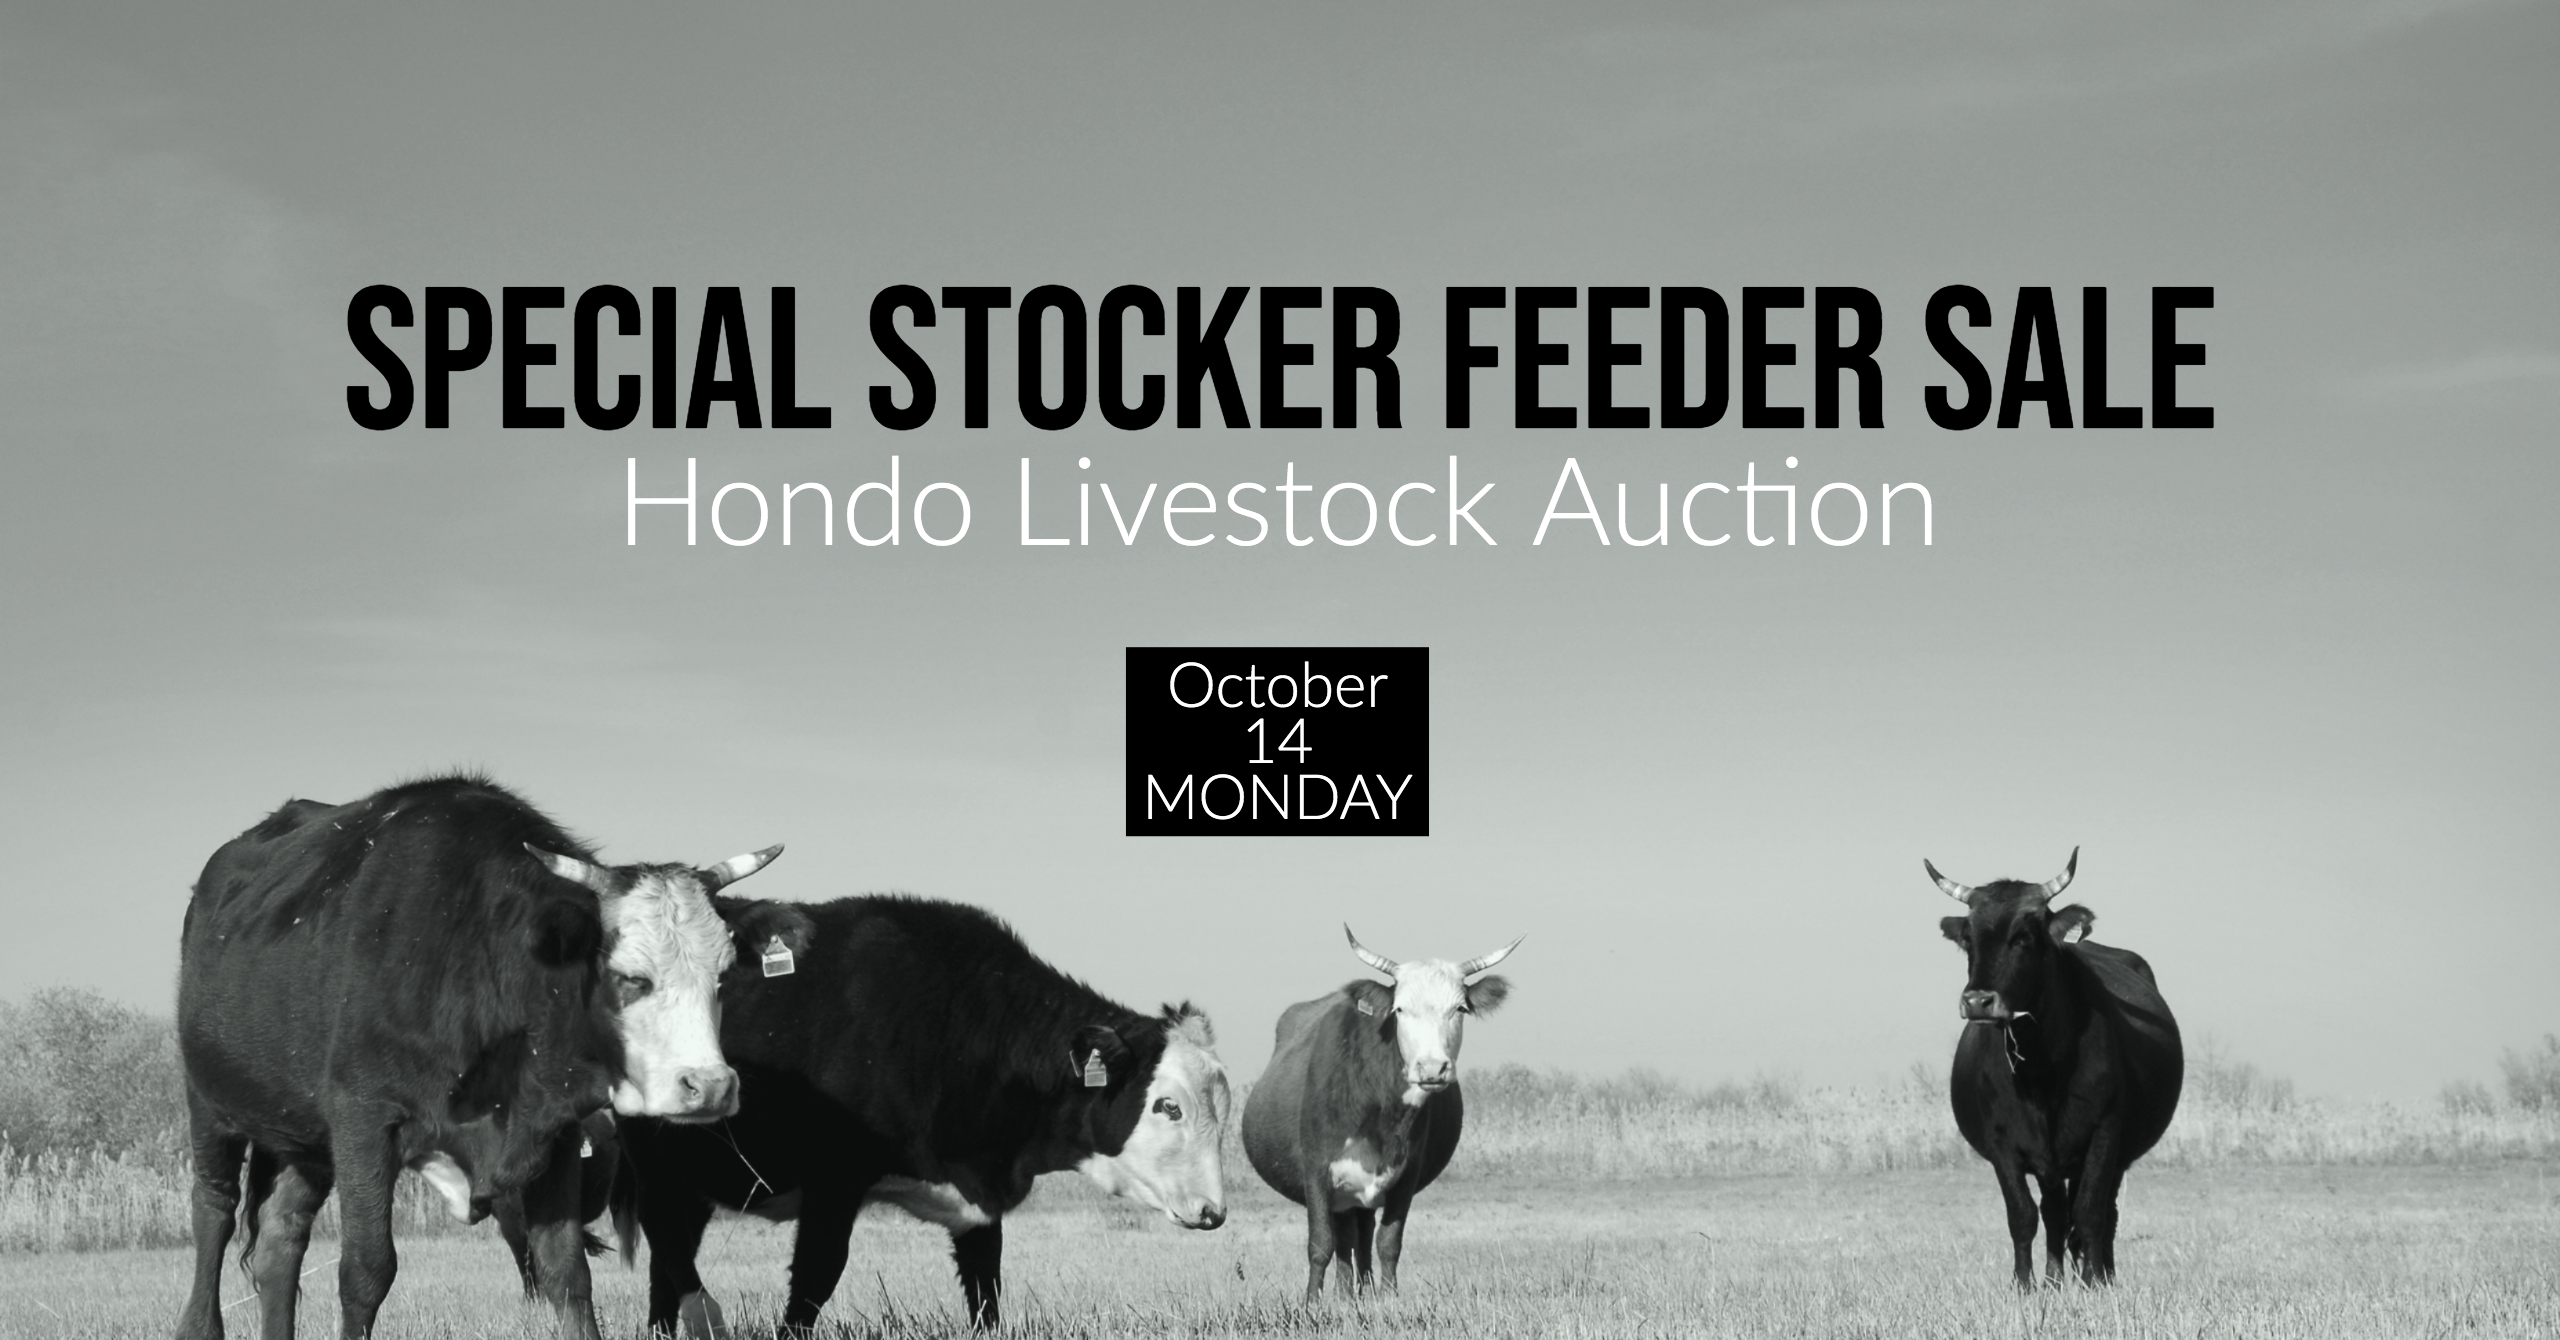 Hondo livestock Auction, Special Sale Date